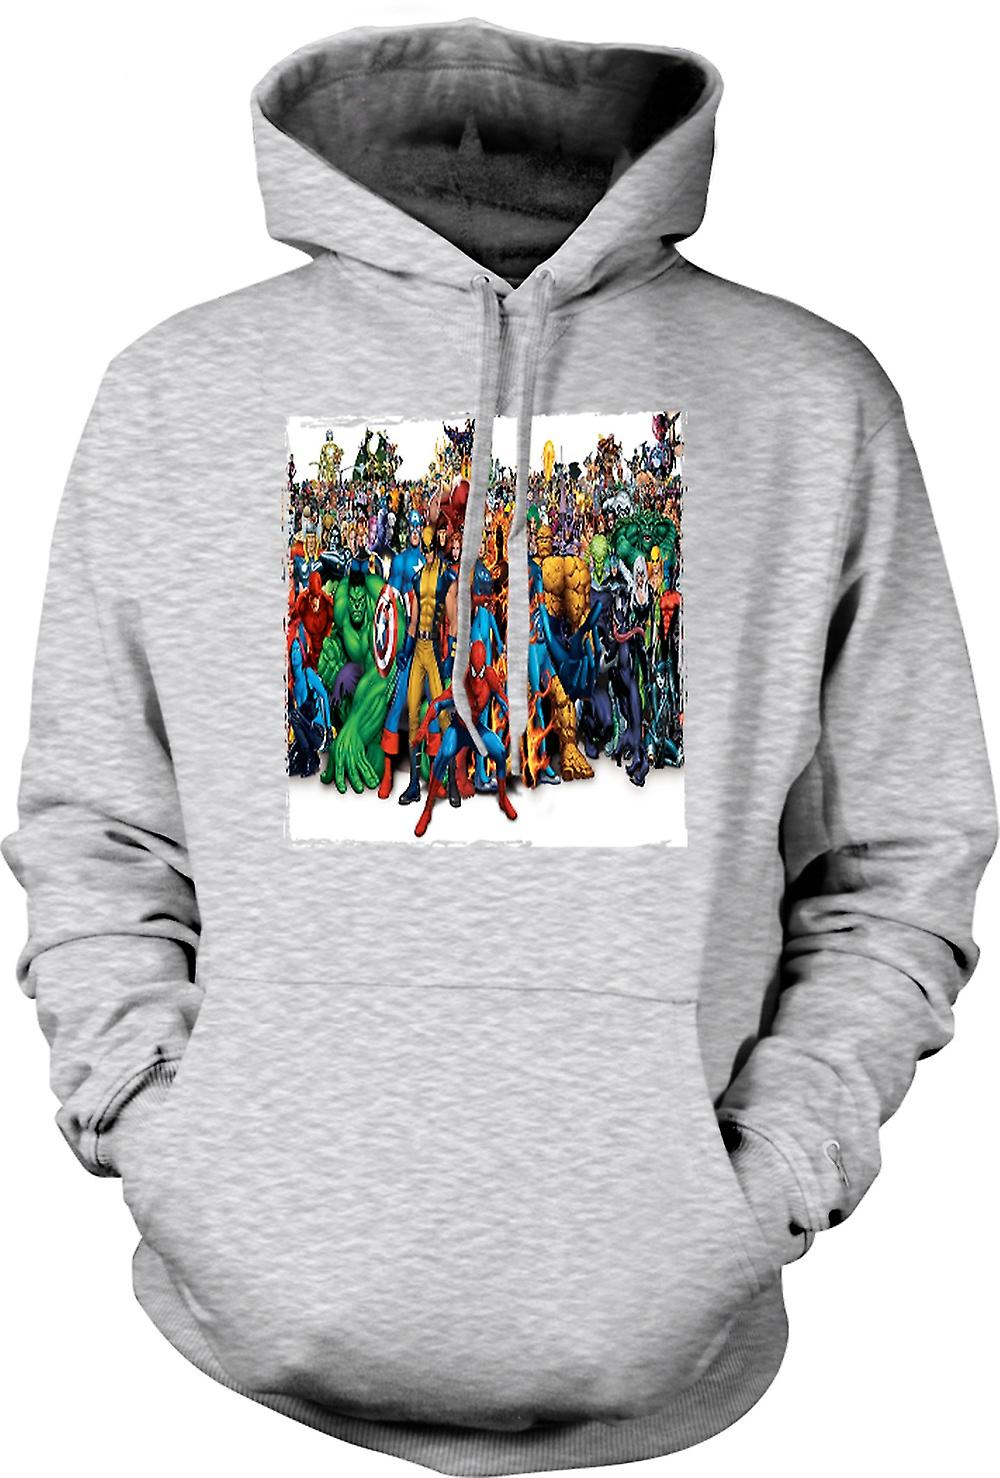 Mens Hoodie - Marvel Comic Hero Group - Portait